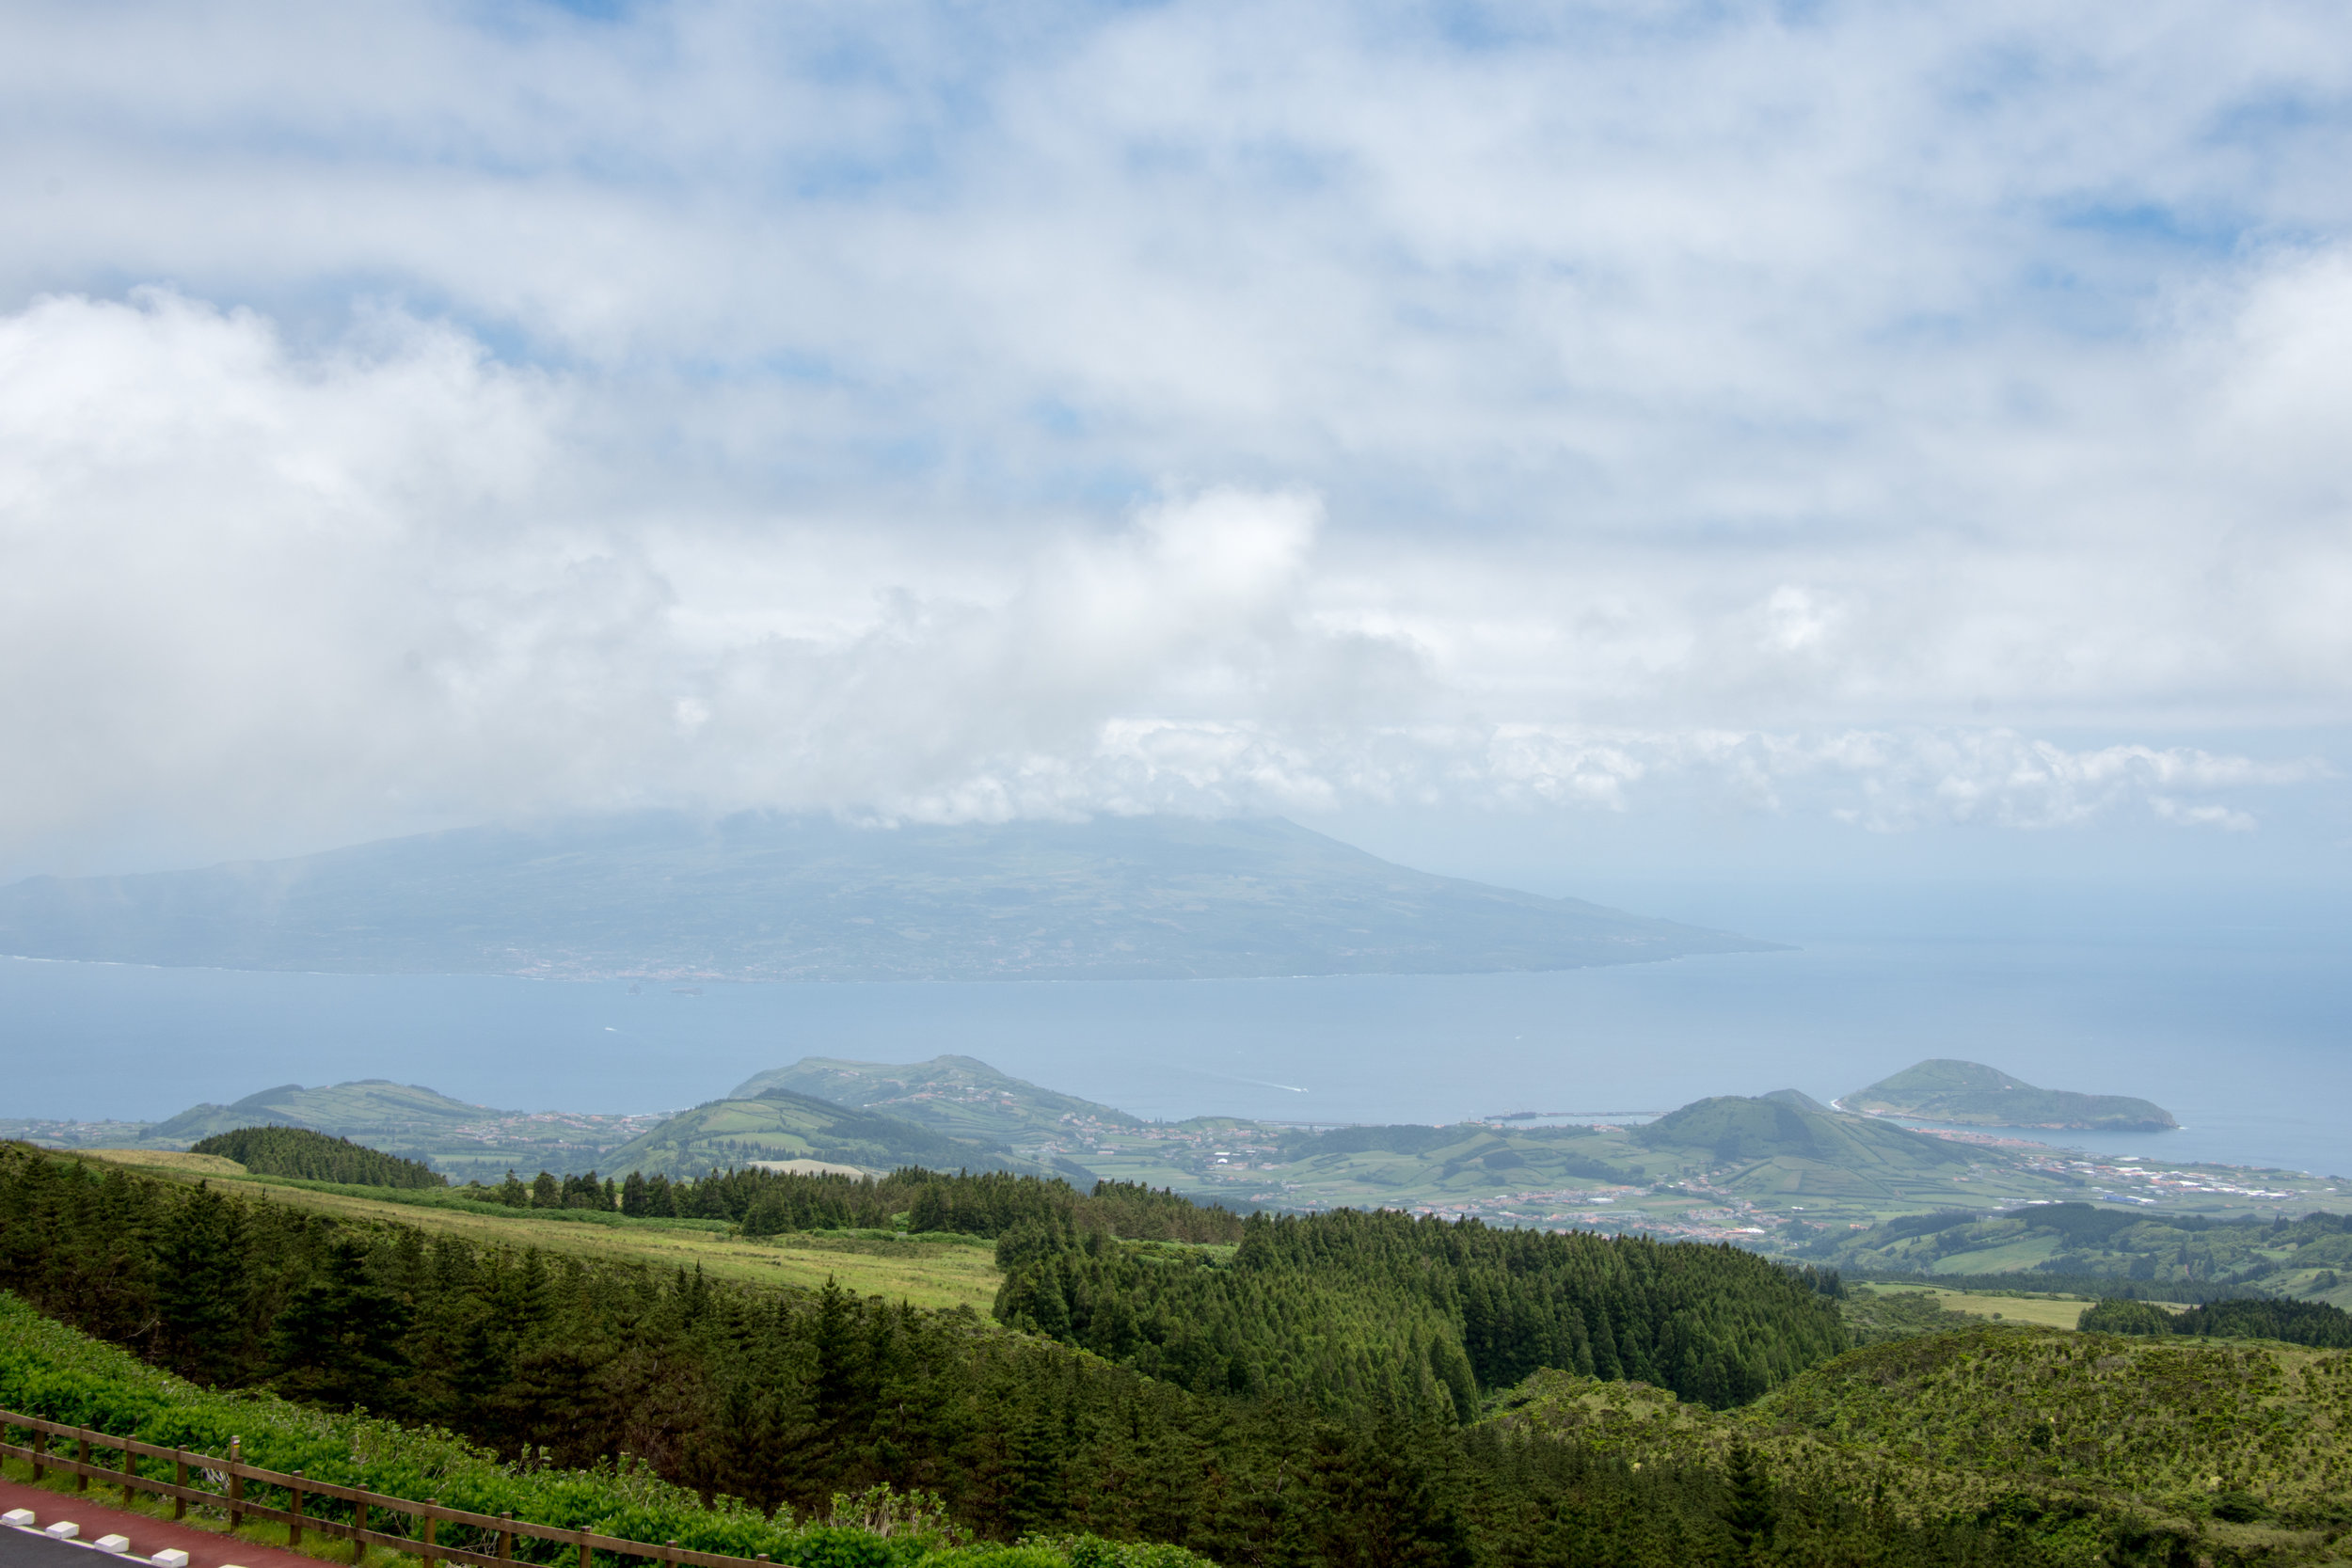 View of Pico and Horta from the Caldeira